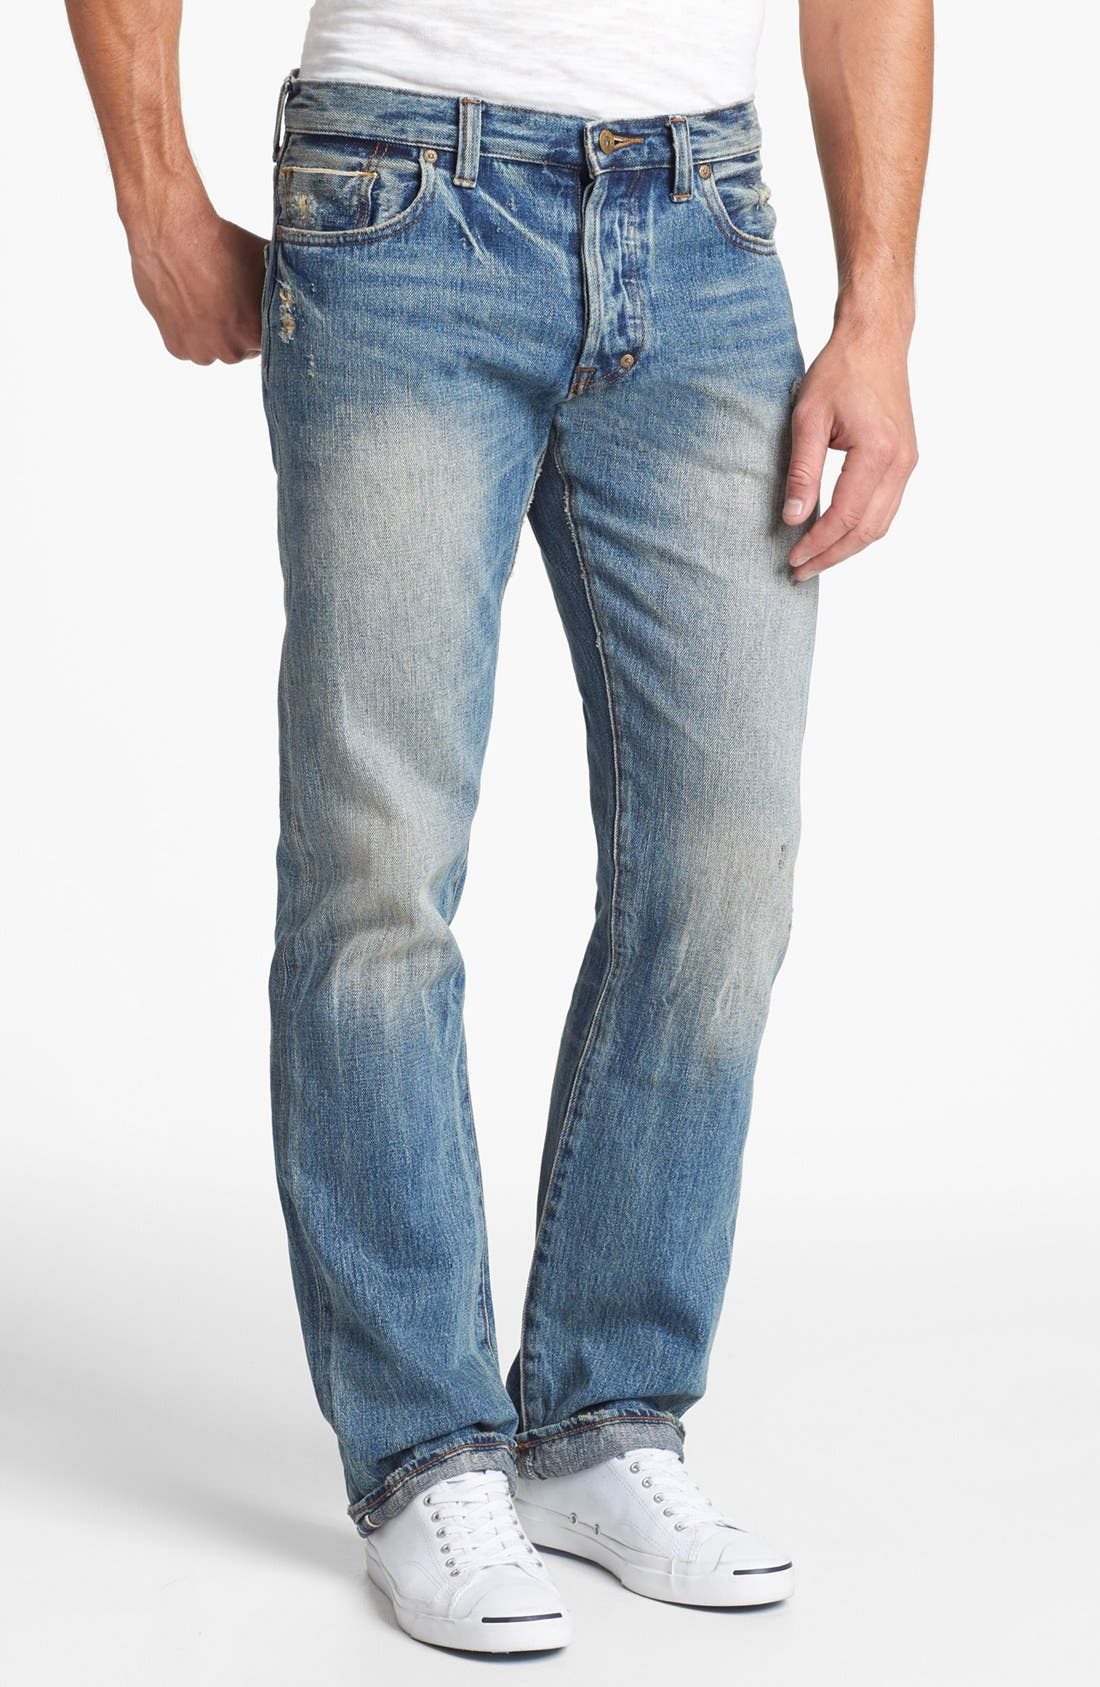 Alternate Image 1 Selected - PRPS 'Barracuda' Straight Leg Selvedge Jeans (5-Year)